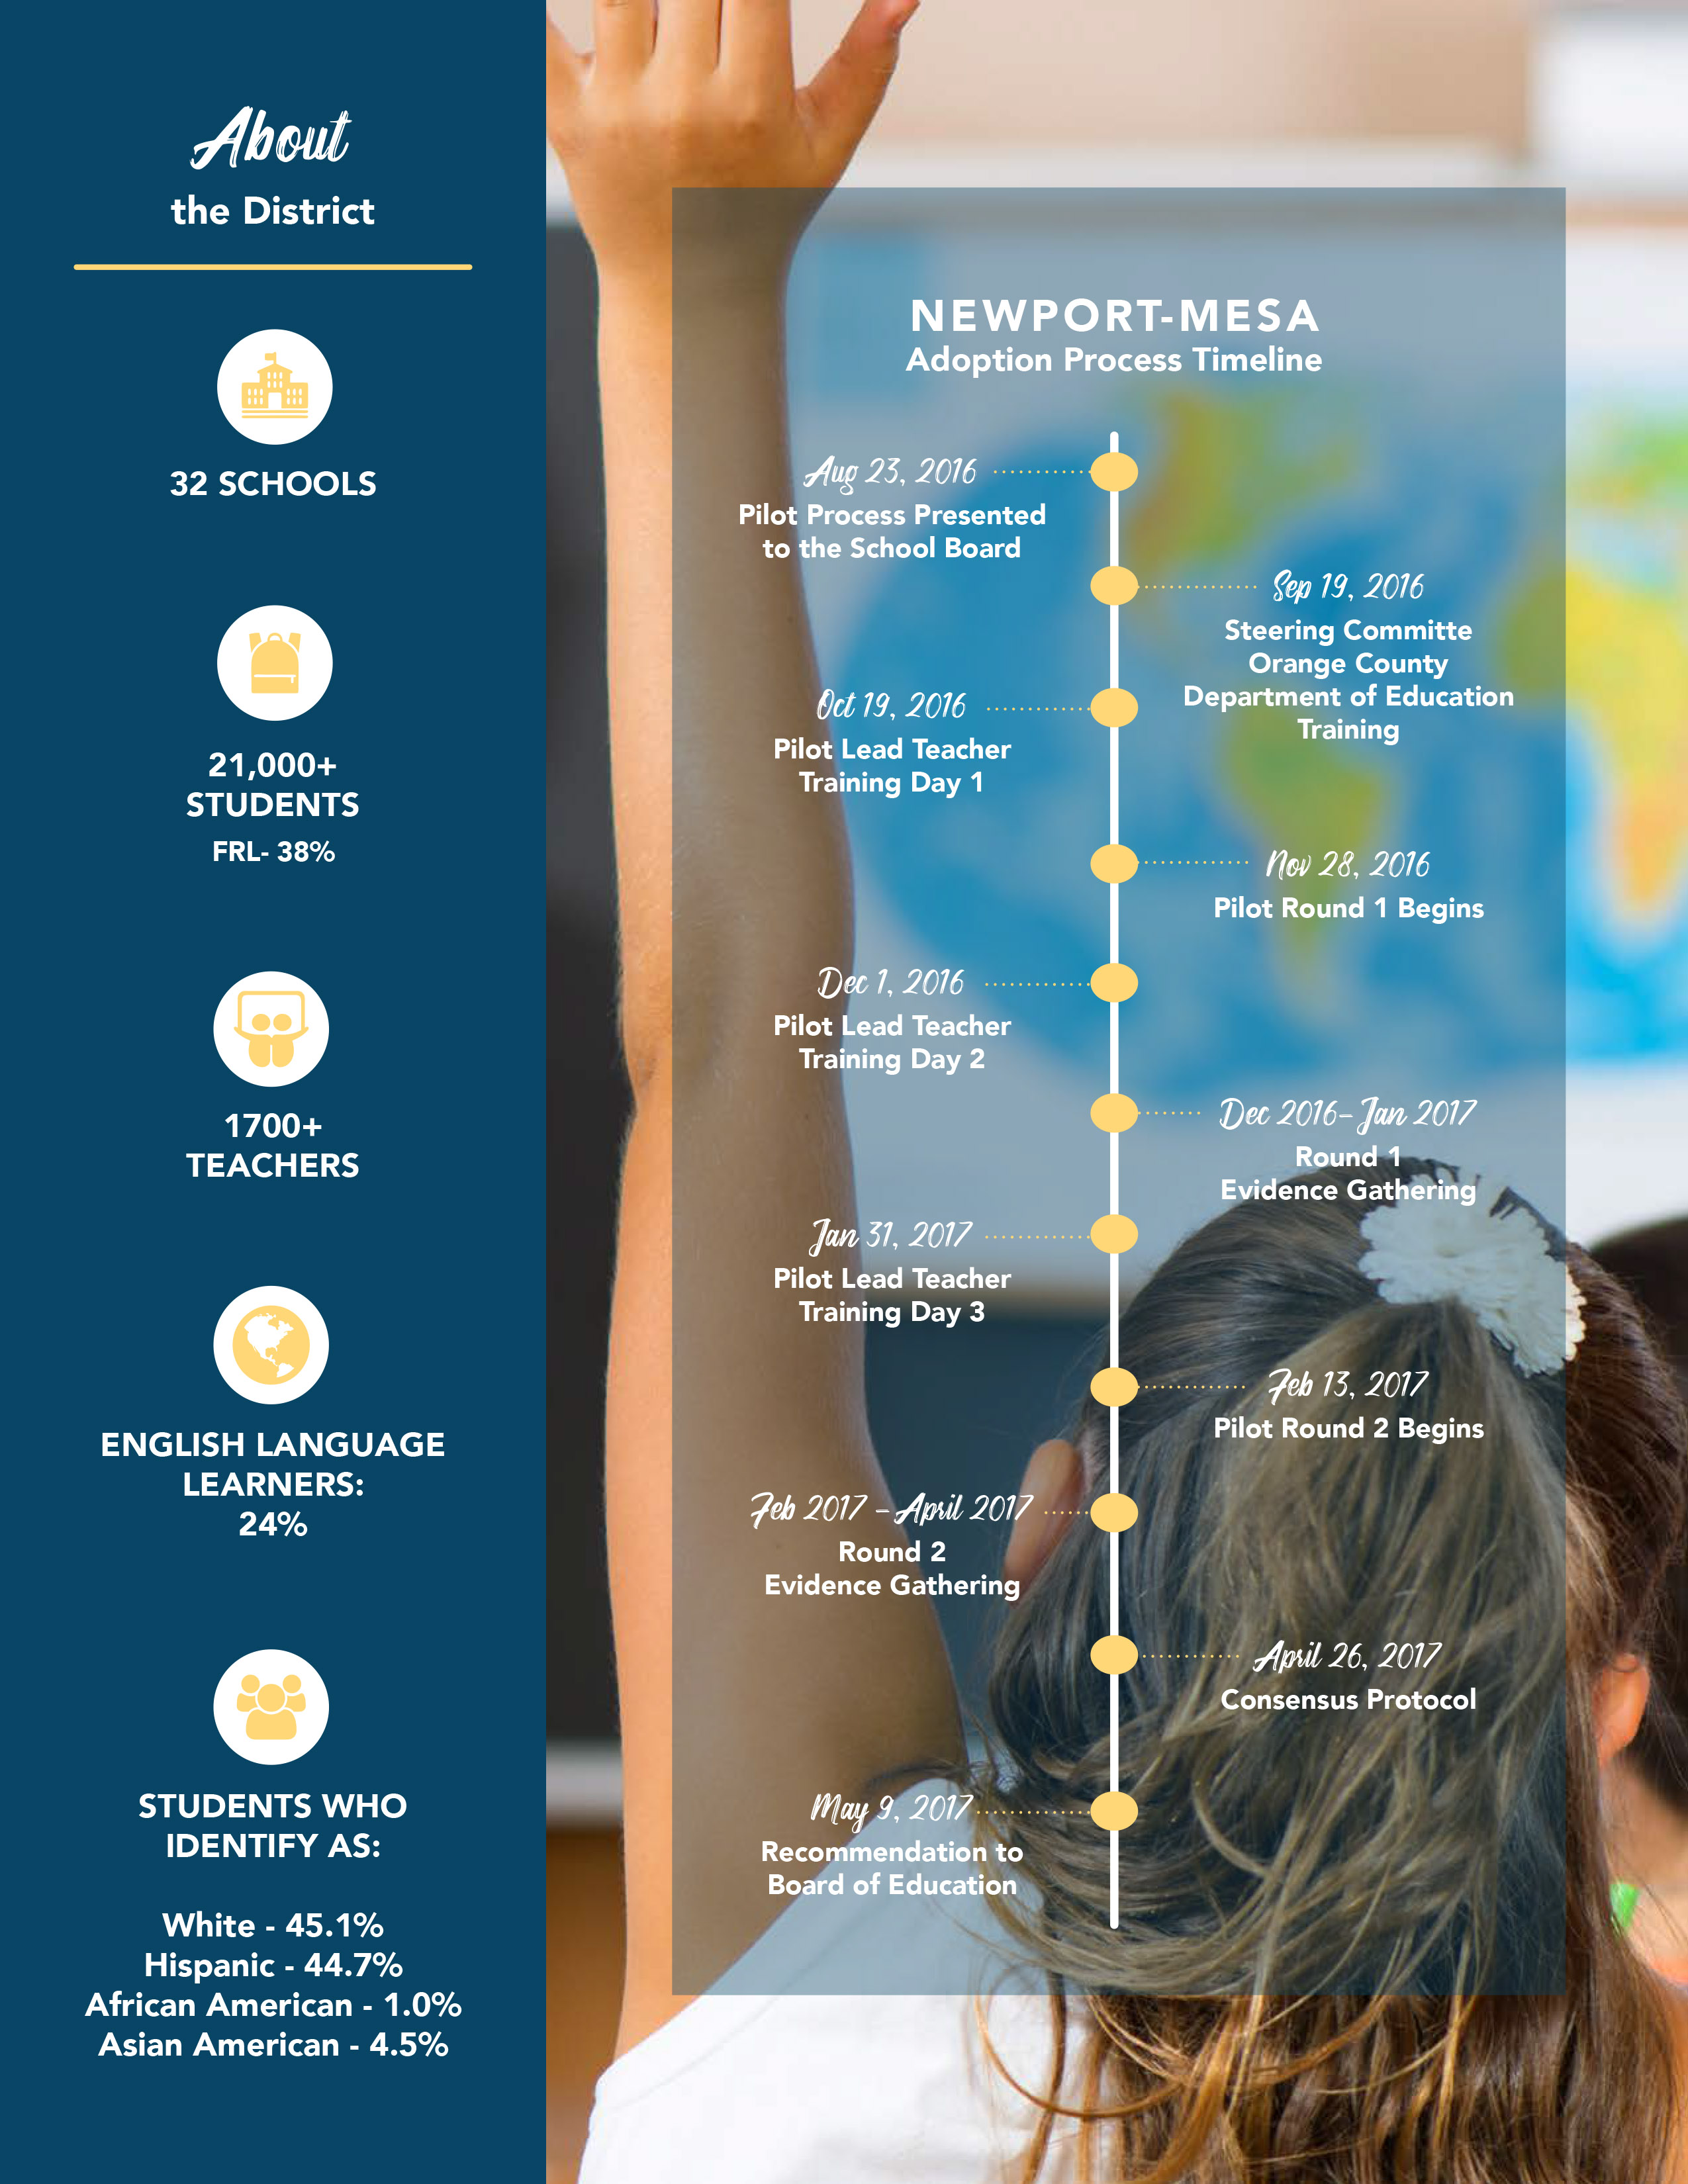 Newport Mesa Case Study_FINAL_web 2.jpg